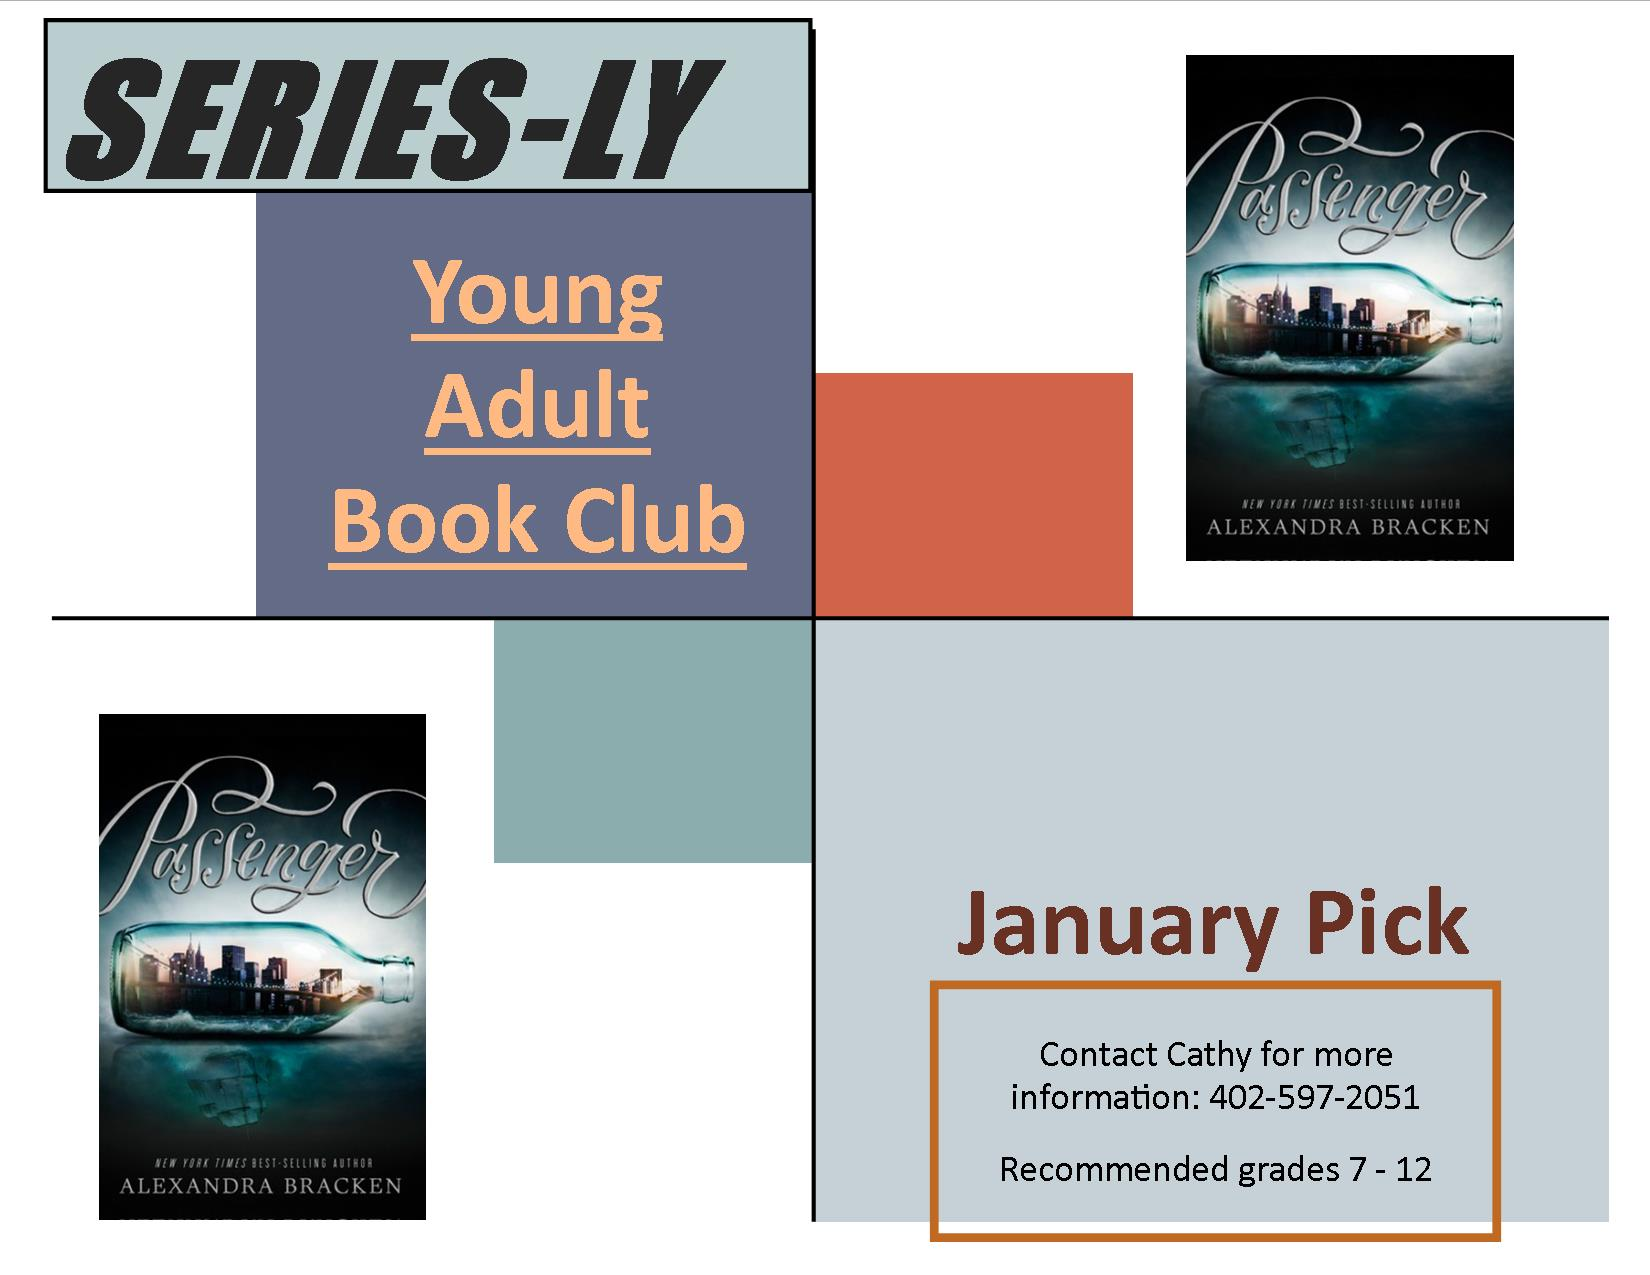 Series-LY Book Club January